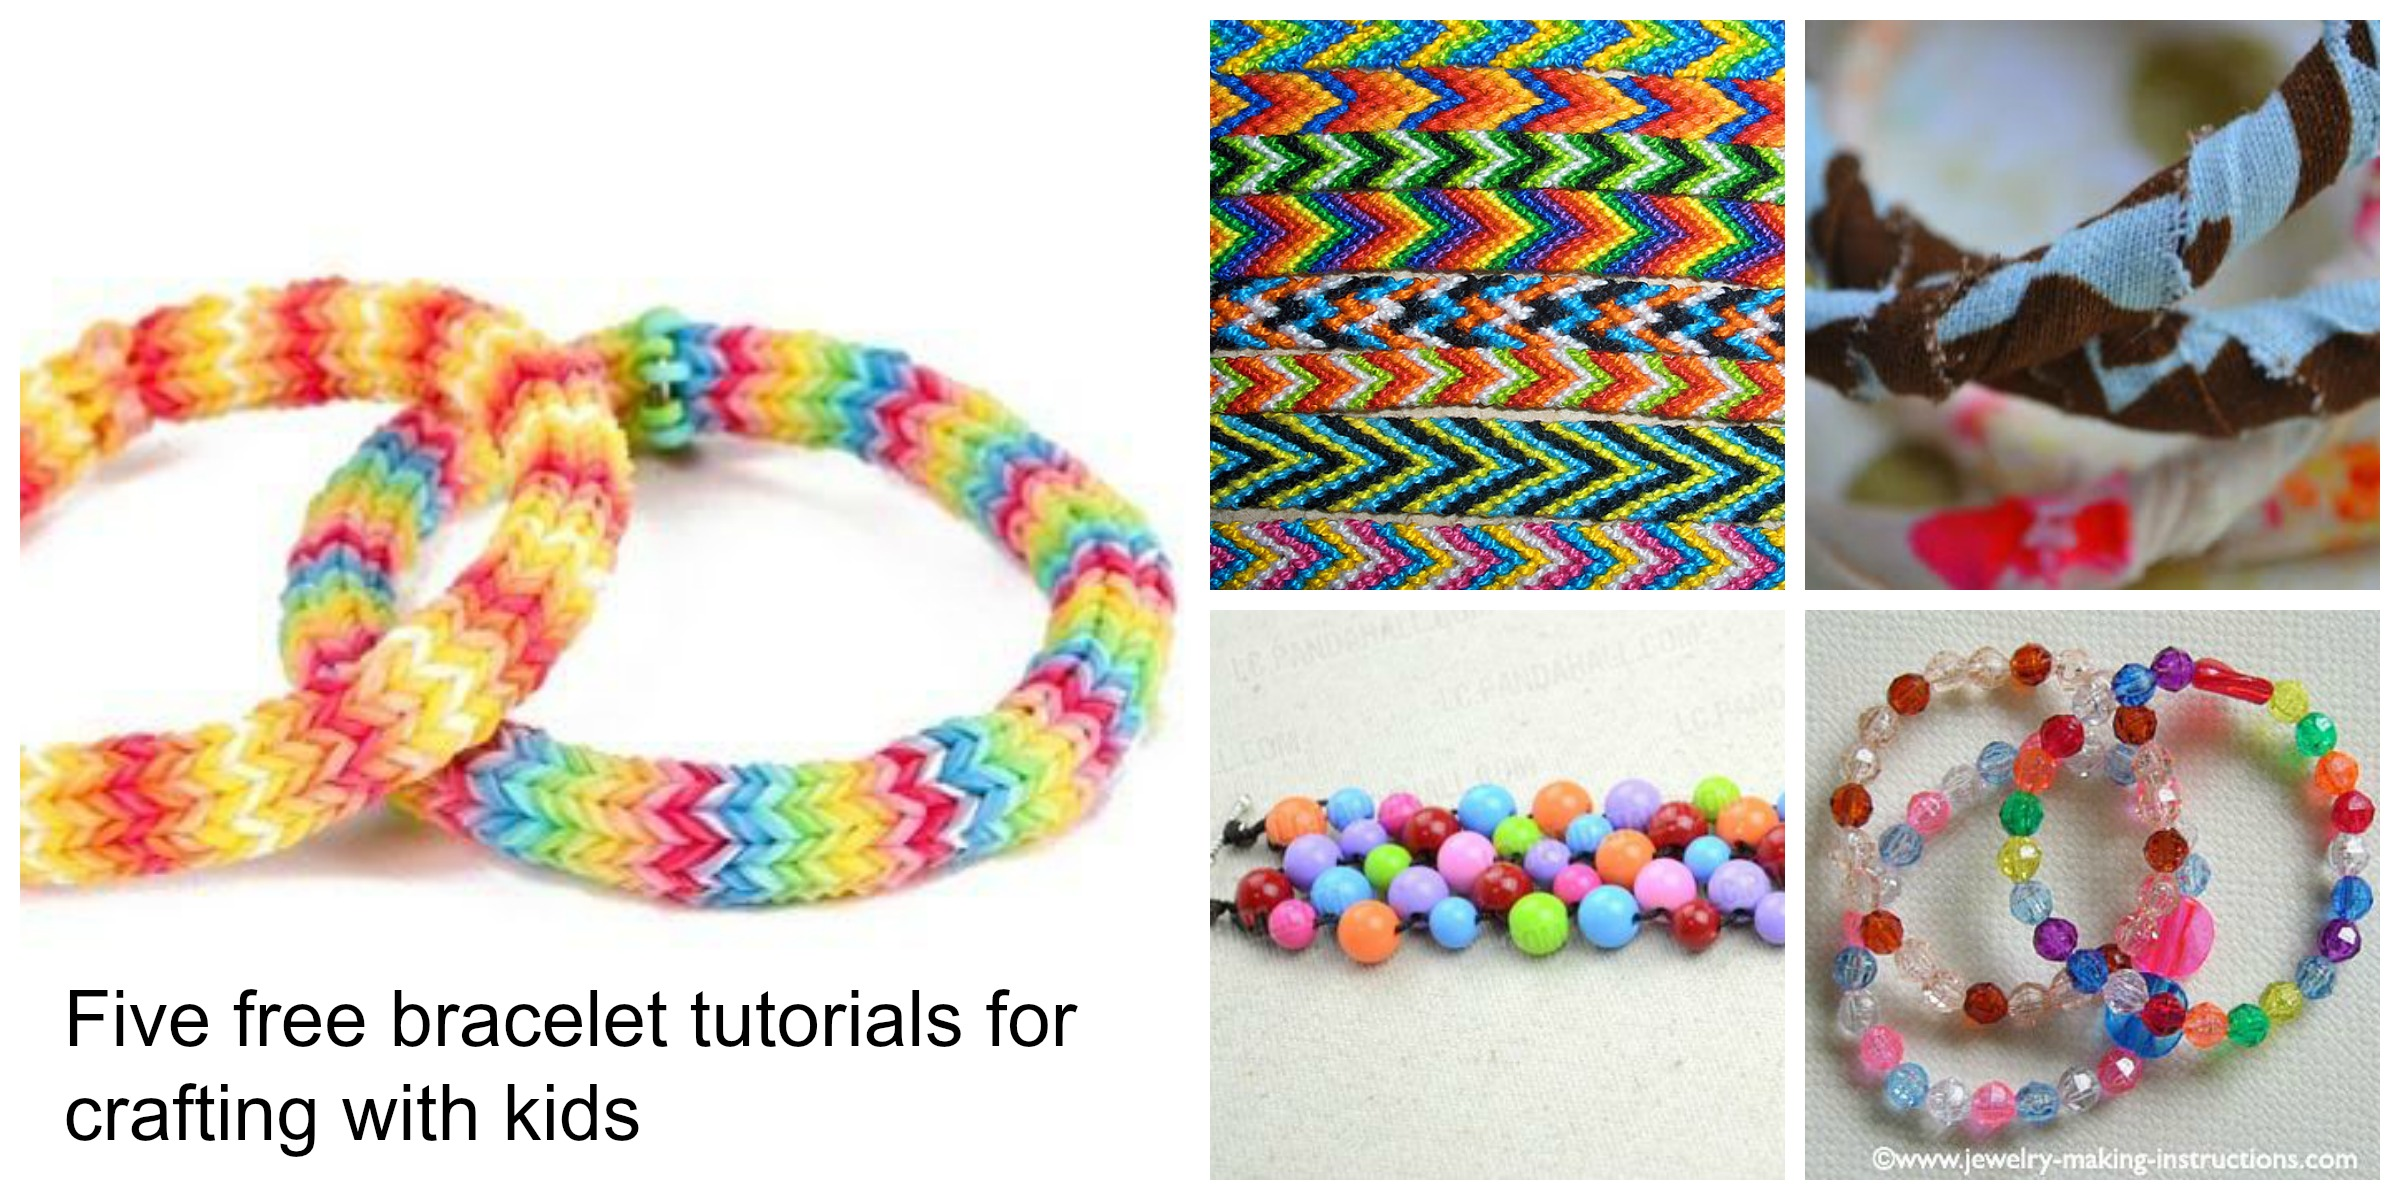 Summer Holiday Jewellery Making Part One Bracelets For